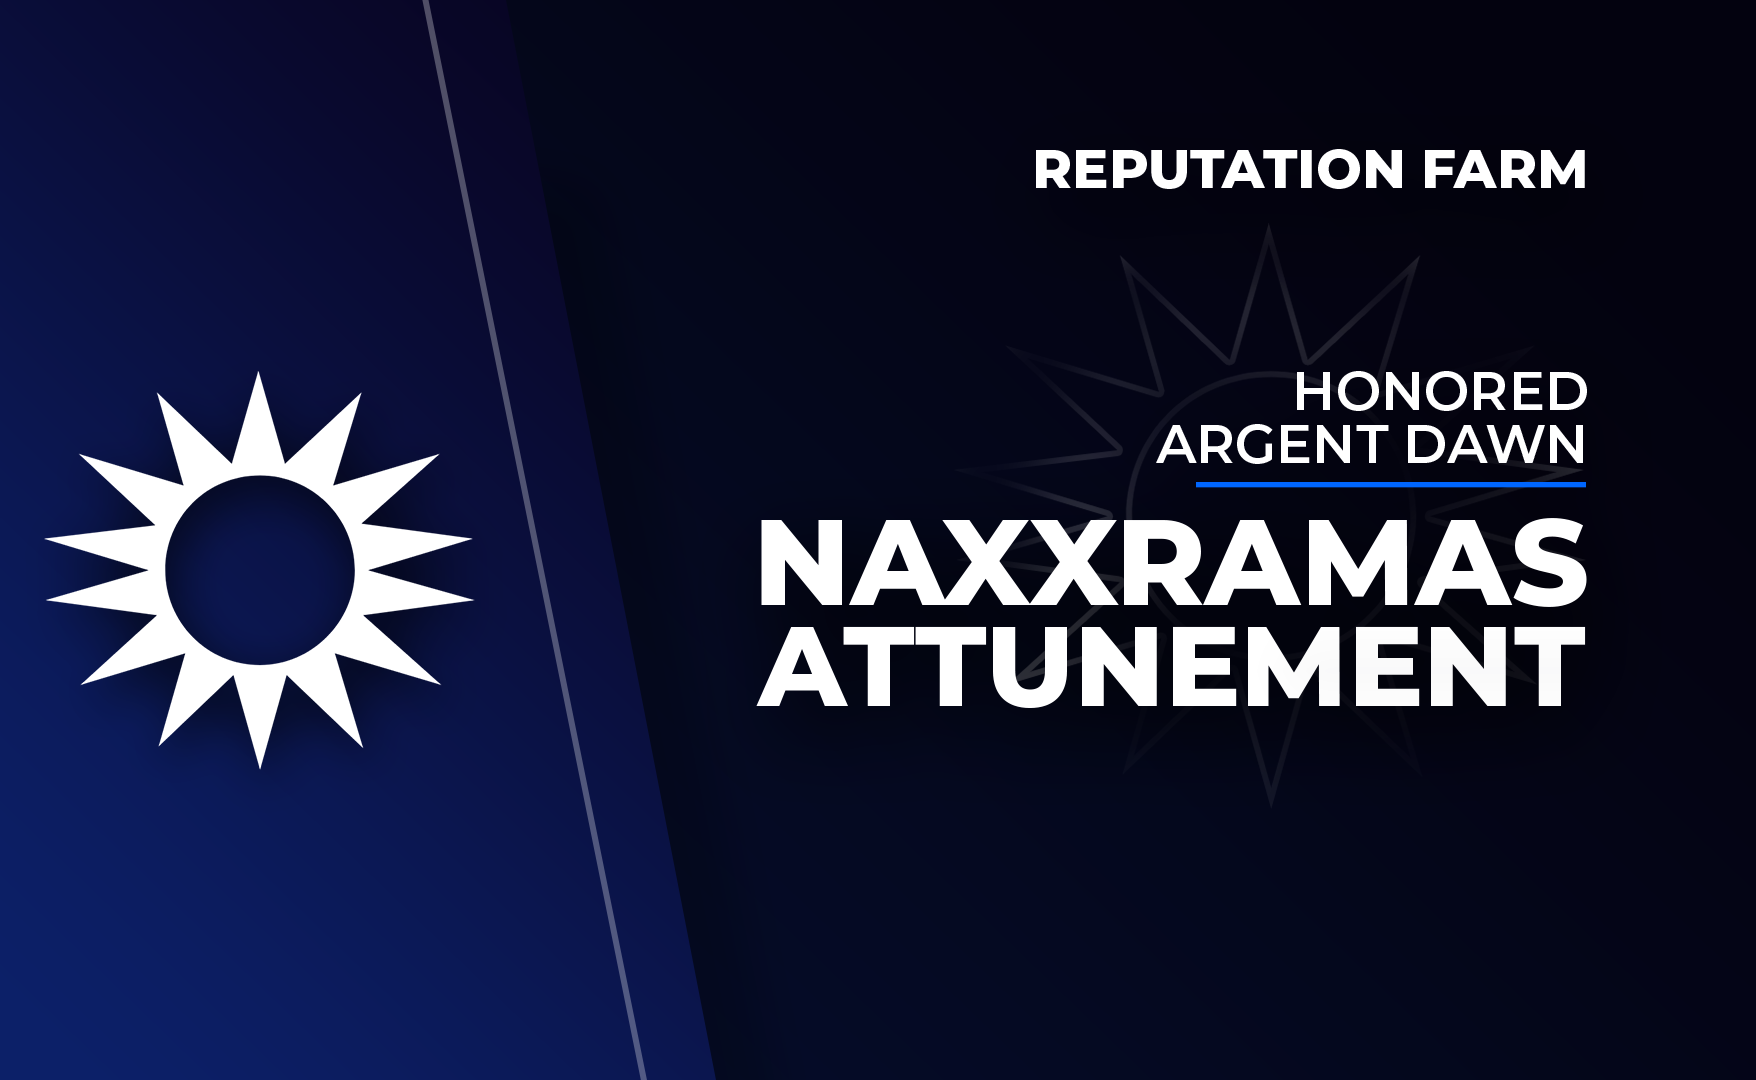 Naxxramas Attunement